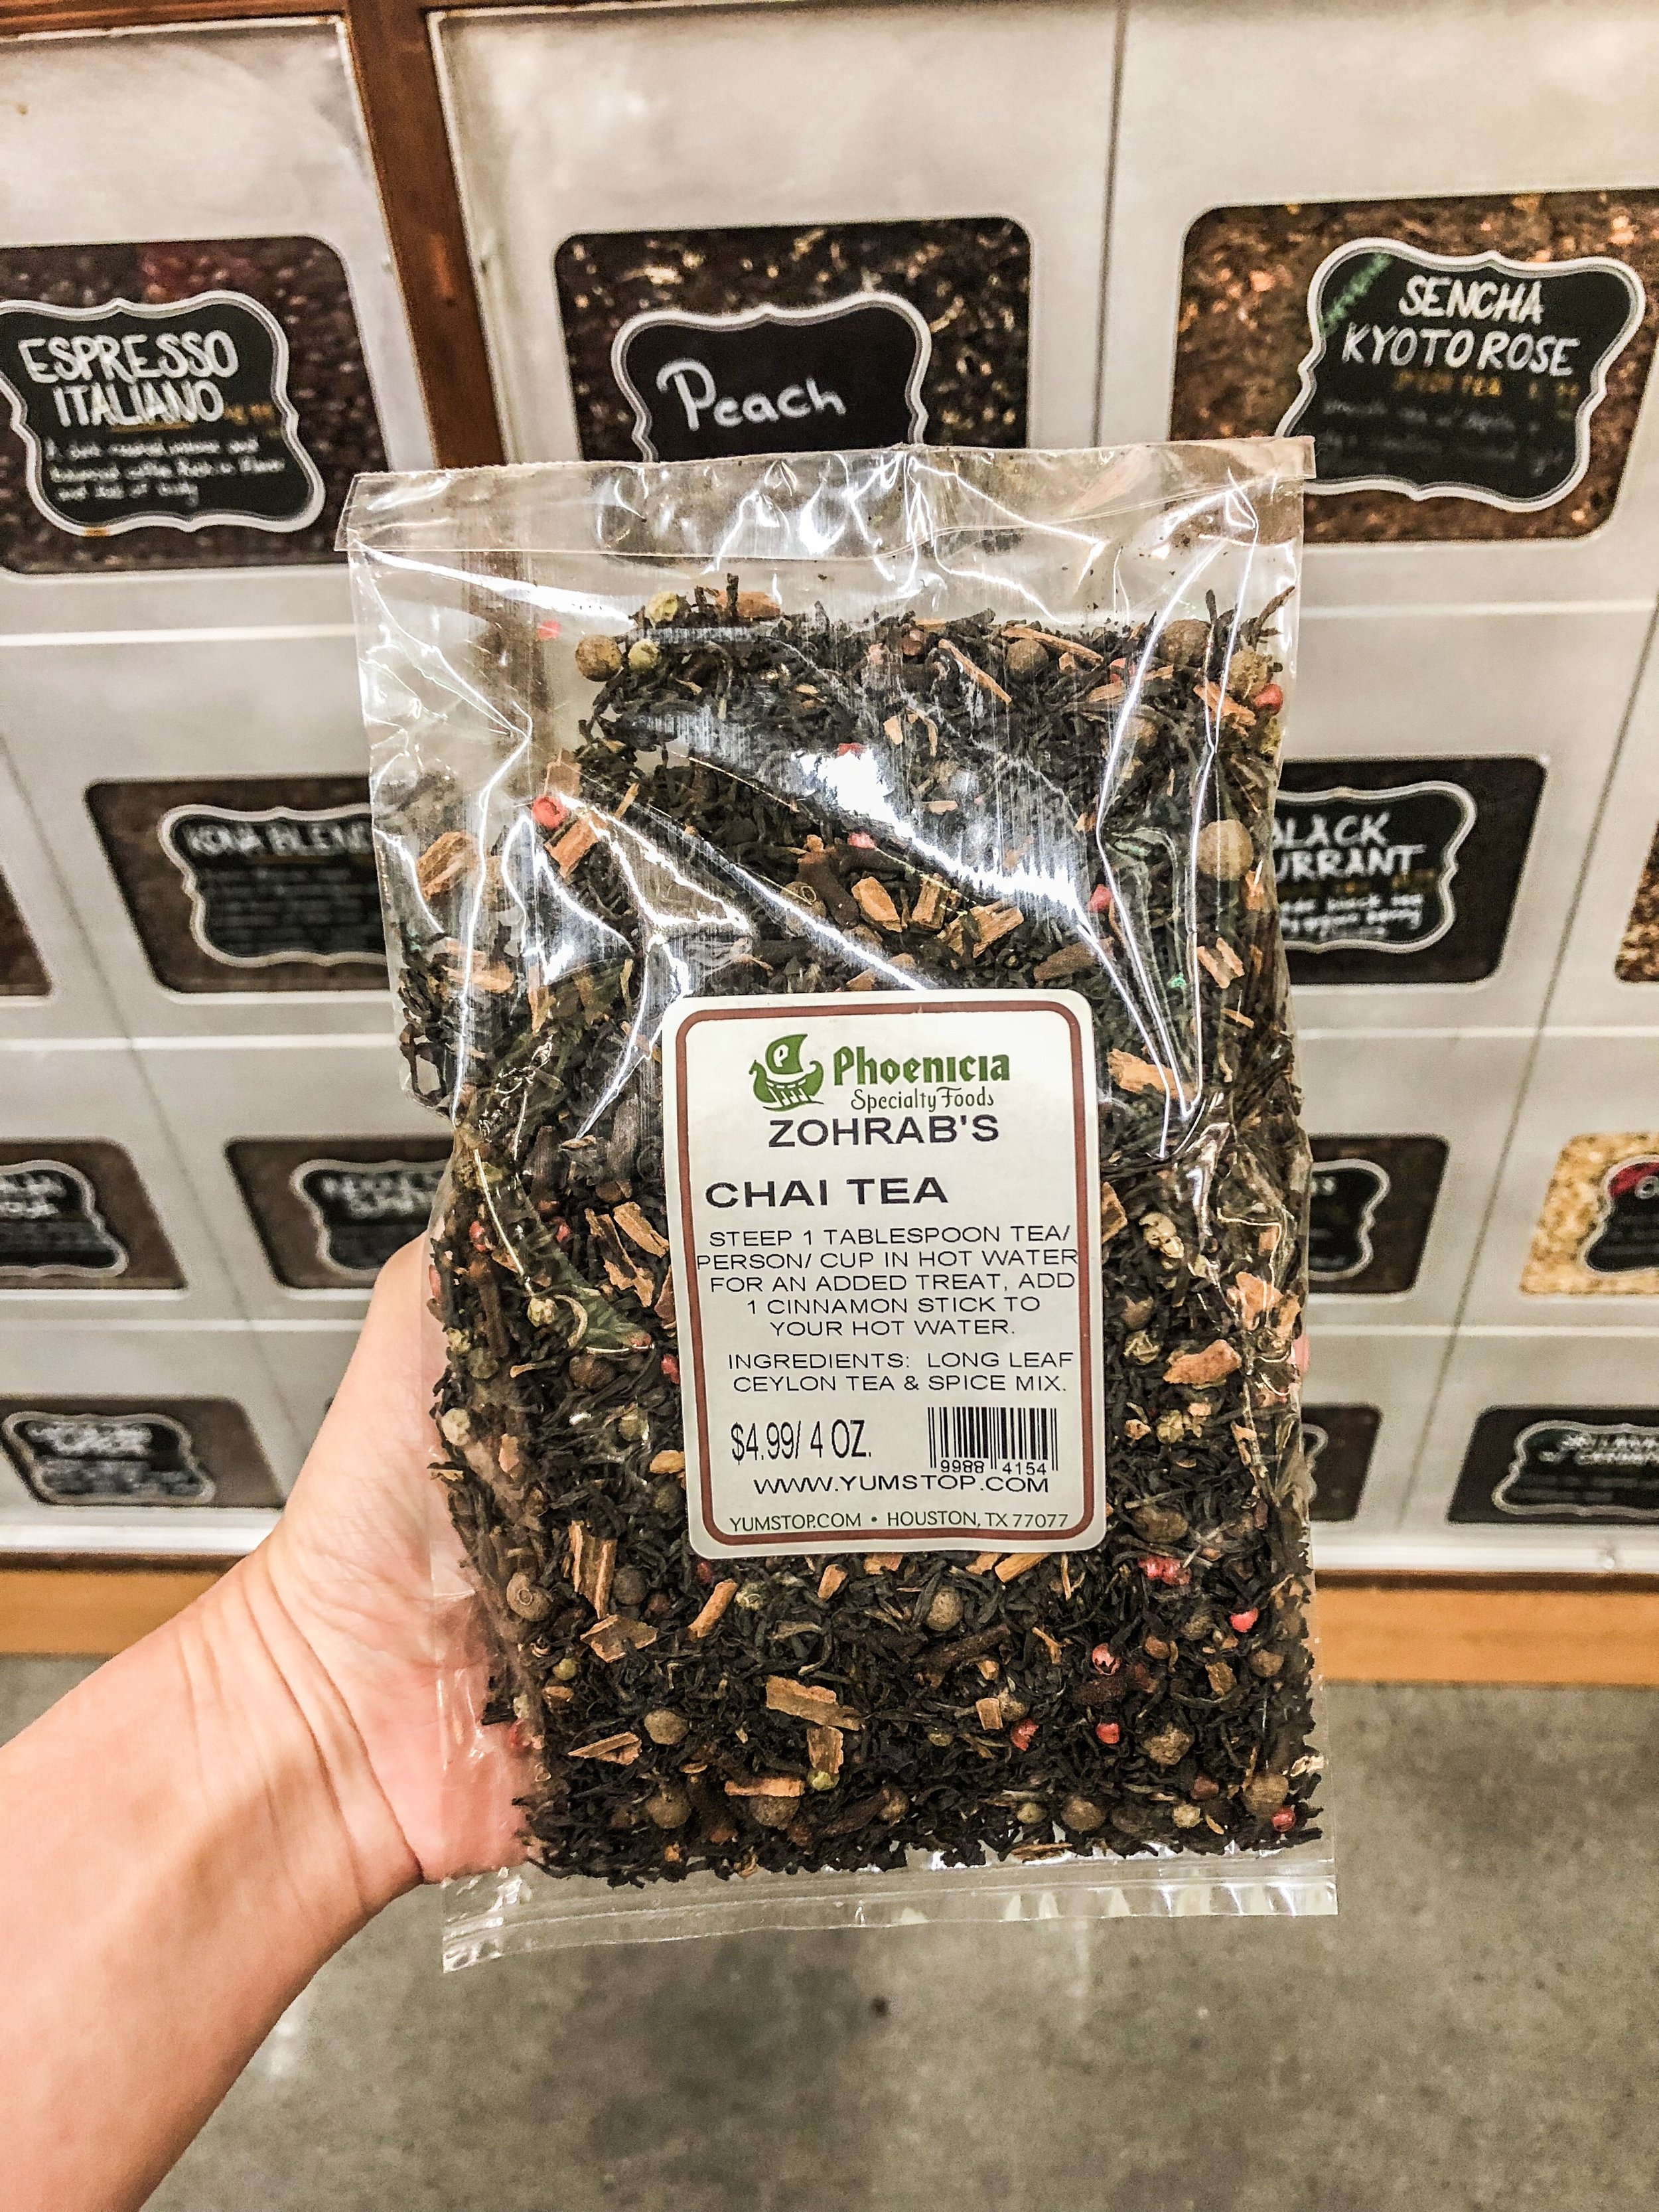 Zohrab's homemade tea blend - It's so good, they had to sell it in their stores!